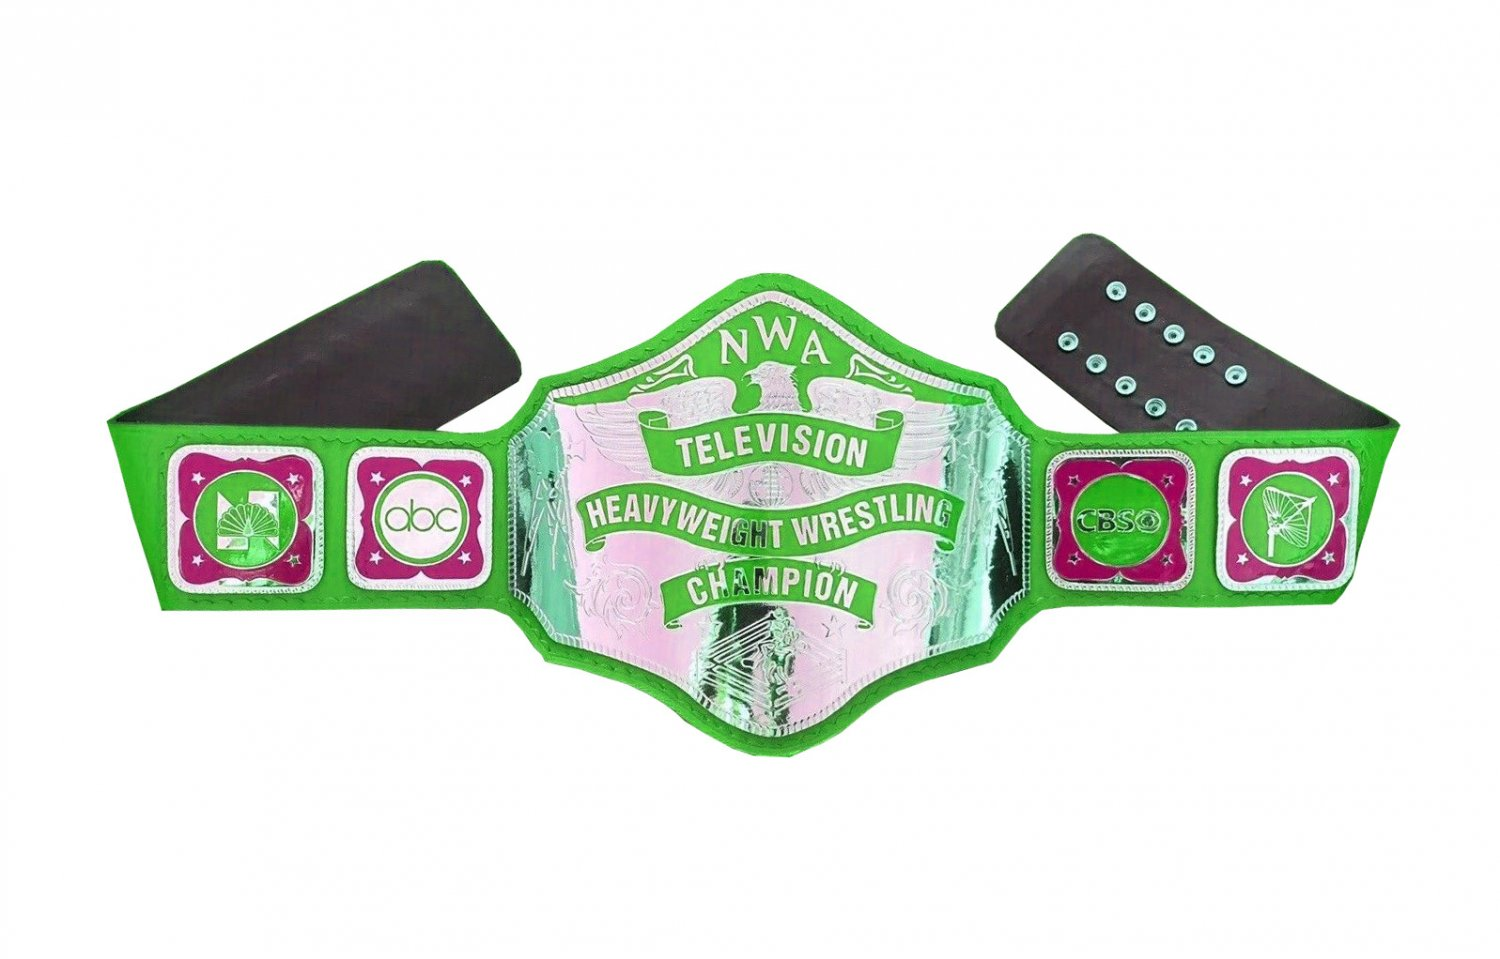 NWA TELEVISION HEAVYWEIGHT WRESTLING CHAMPIONSHIP GREEN LEATHER STRAP ADULT SIZE